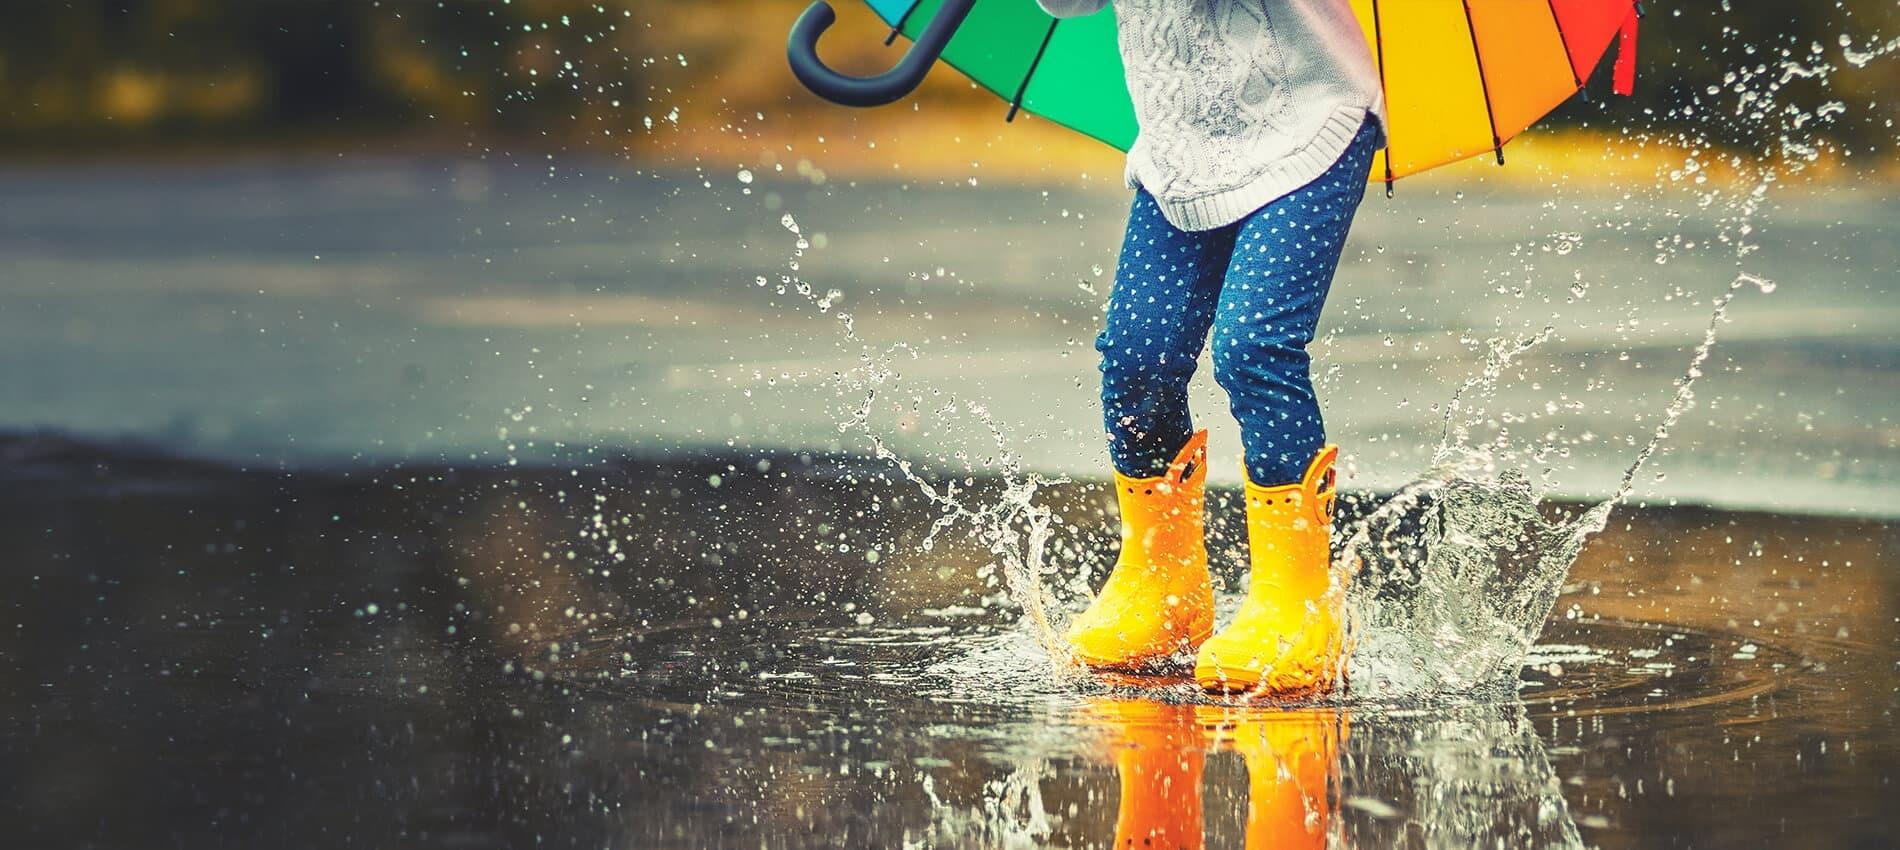 Child wearing rain boots jumping in a puddle with an umbrella